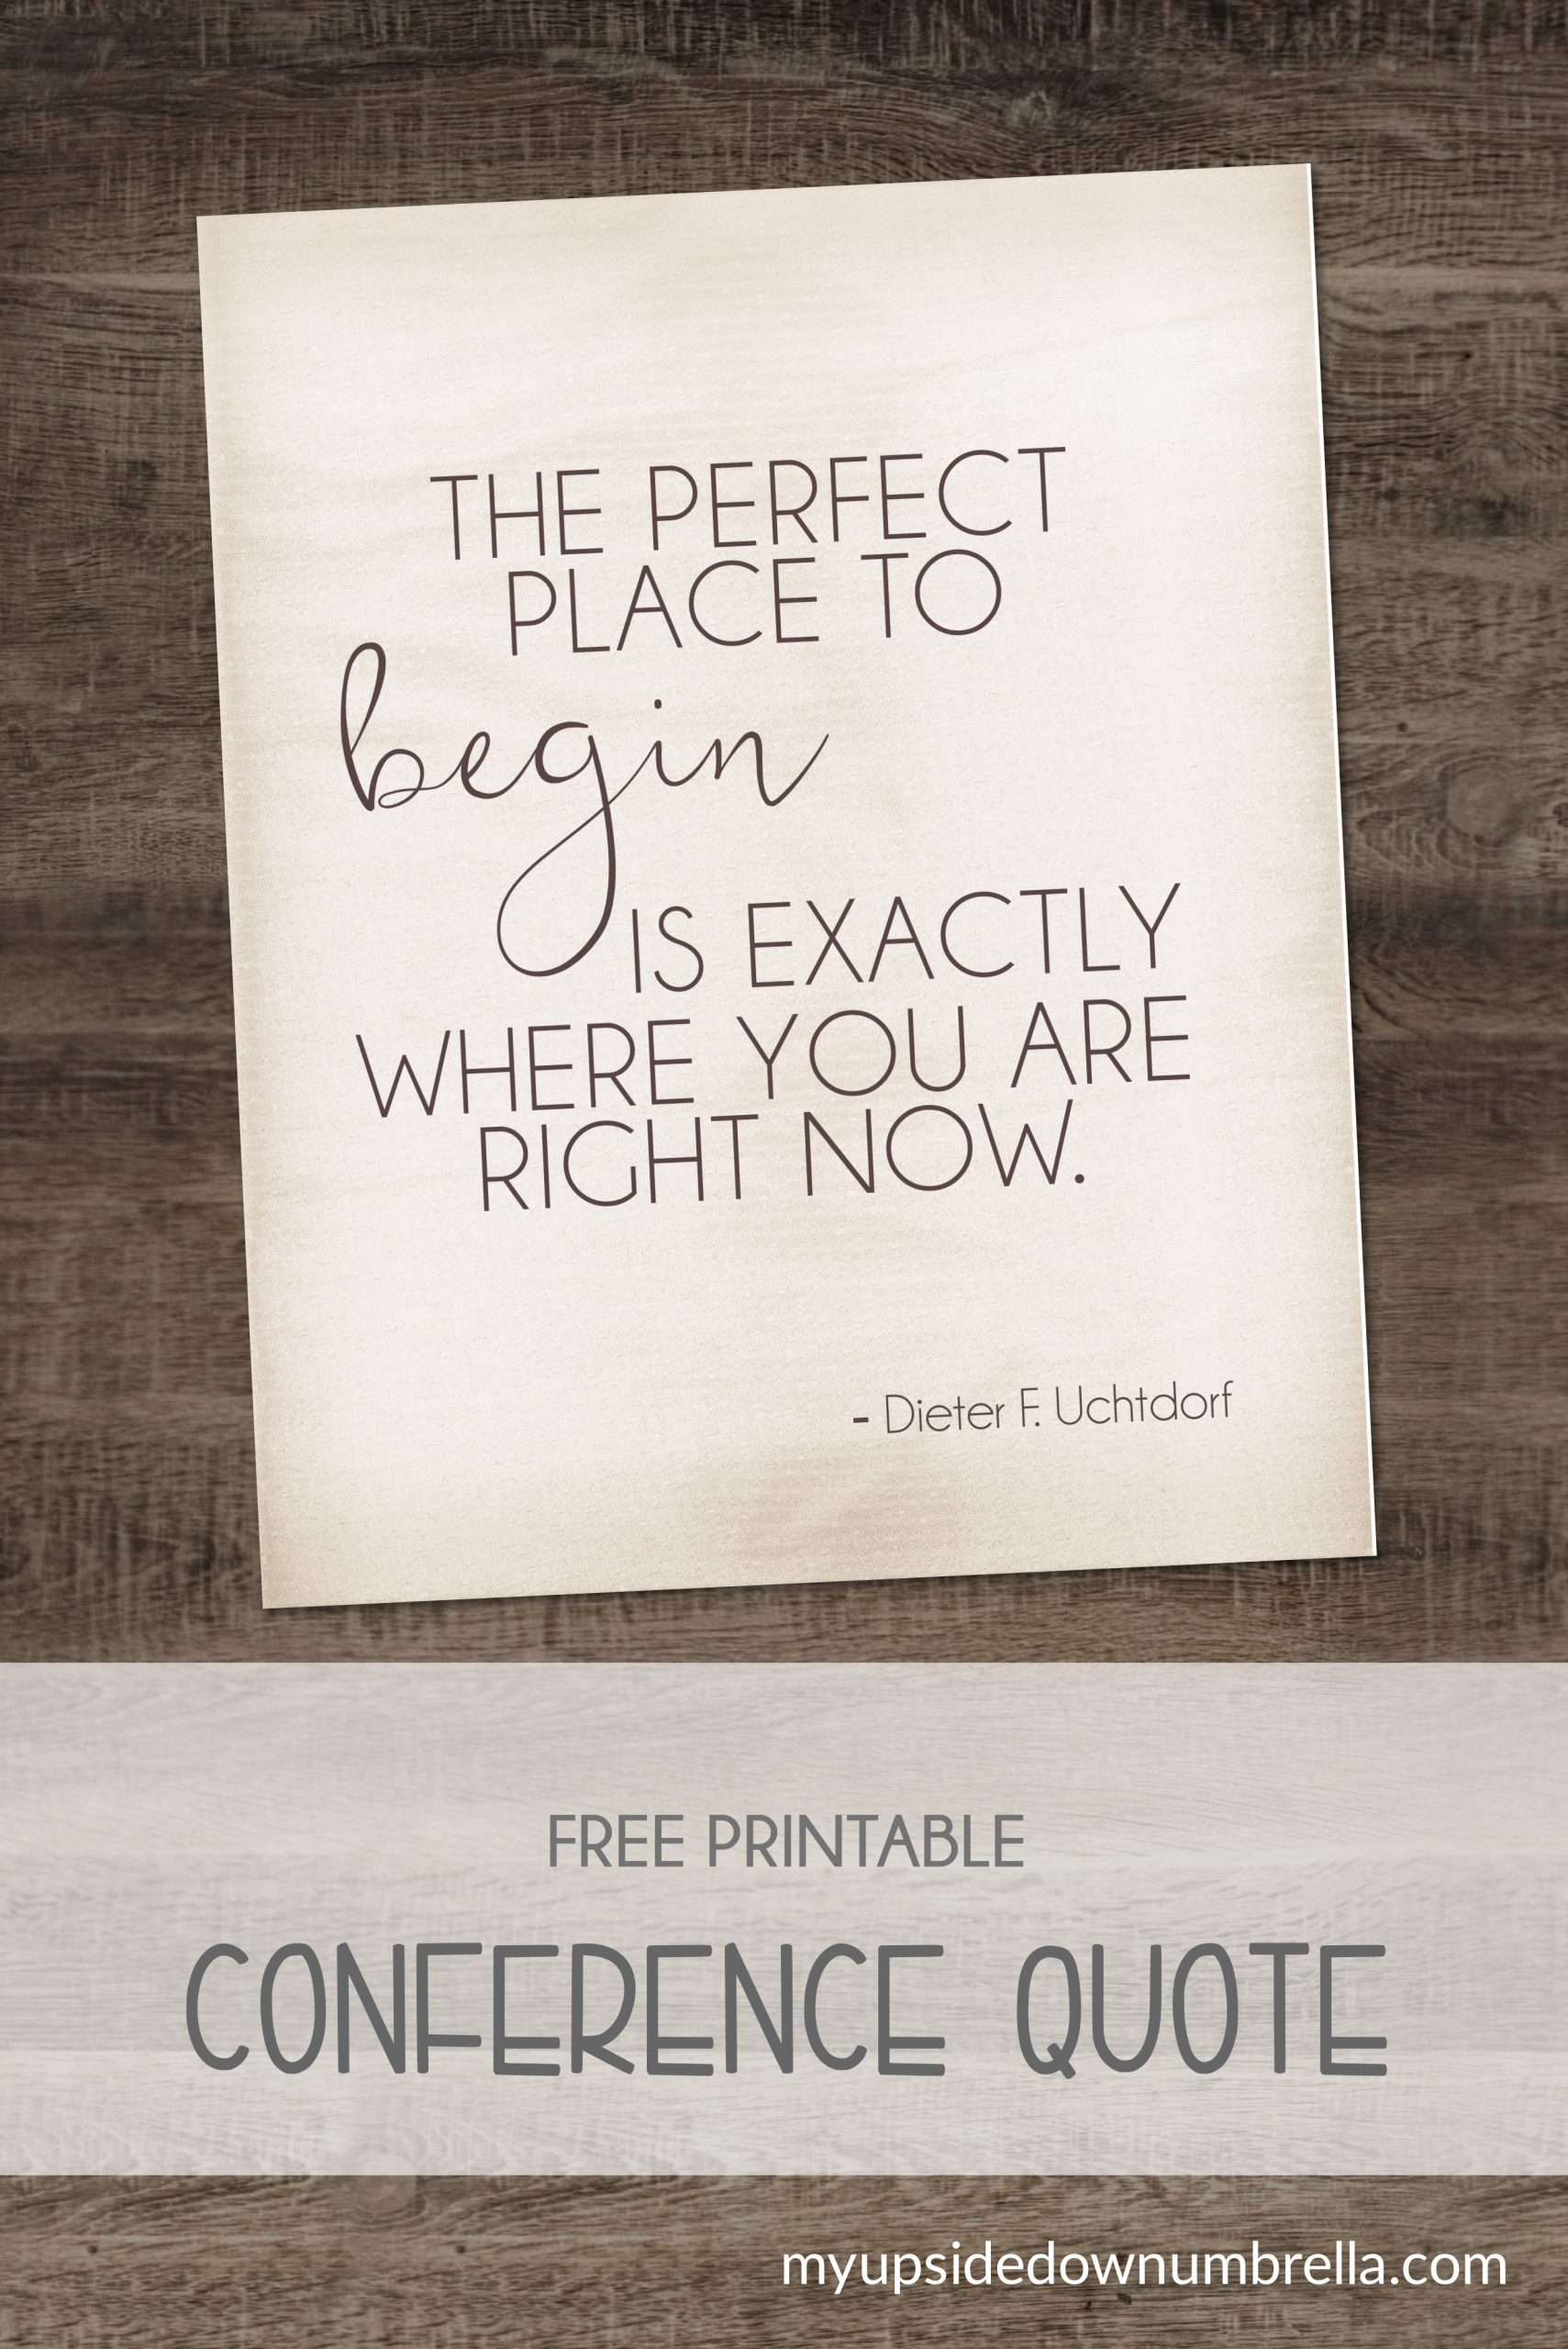 Dieter F. Uchtdorf general conference quote the perfect place to begin,